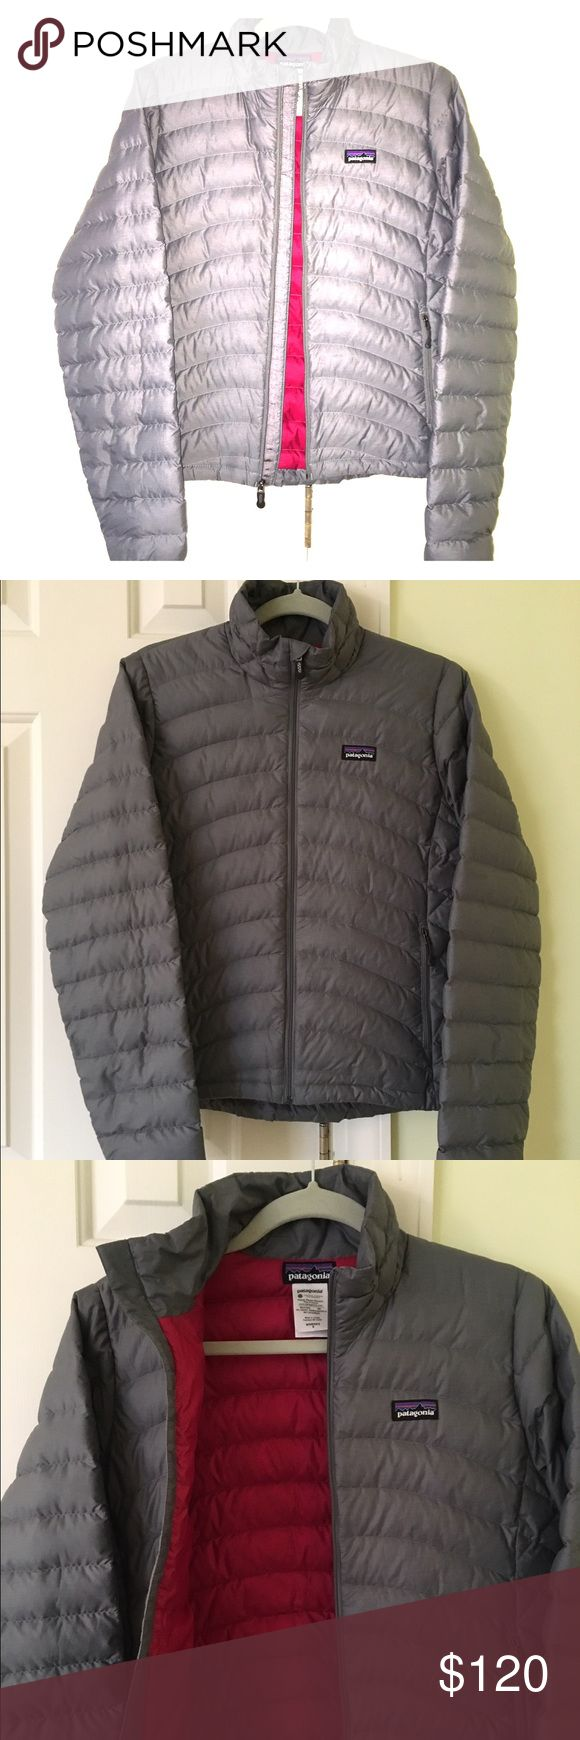 Patagonia Women's Down Sweater Jacket Patagonia Down Sweater Jacket, women's size small. Purchased one year ago and worn very lightly! In great shape with no stains/tears/holes etc. The neutral color is great and goes with everything, while the bright pink inside gives a fun pop. Super warm and versatile! Patagonia Jackets & Coats Puffers